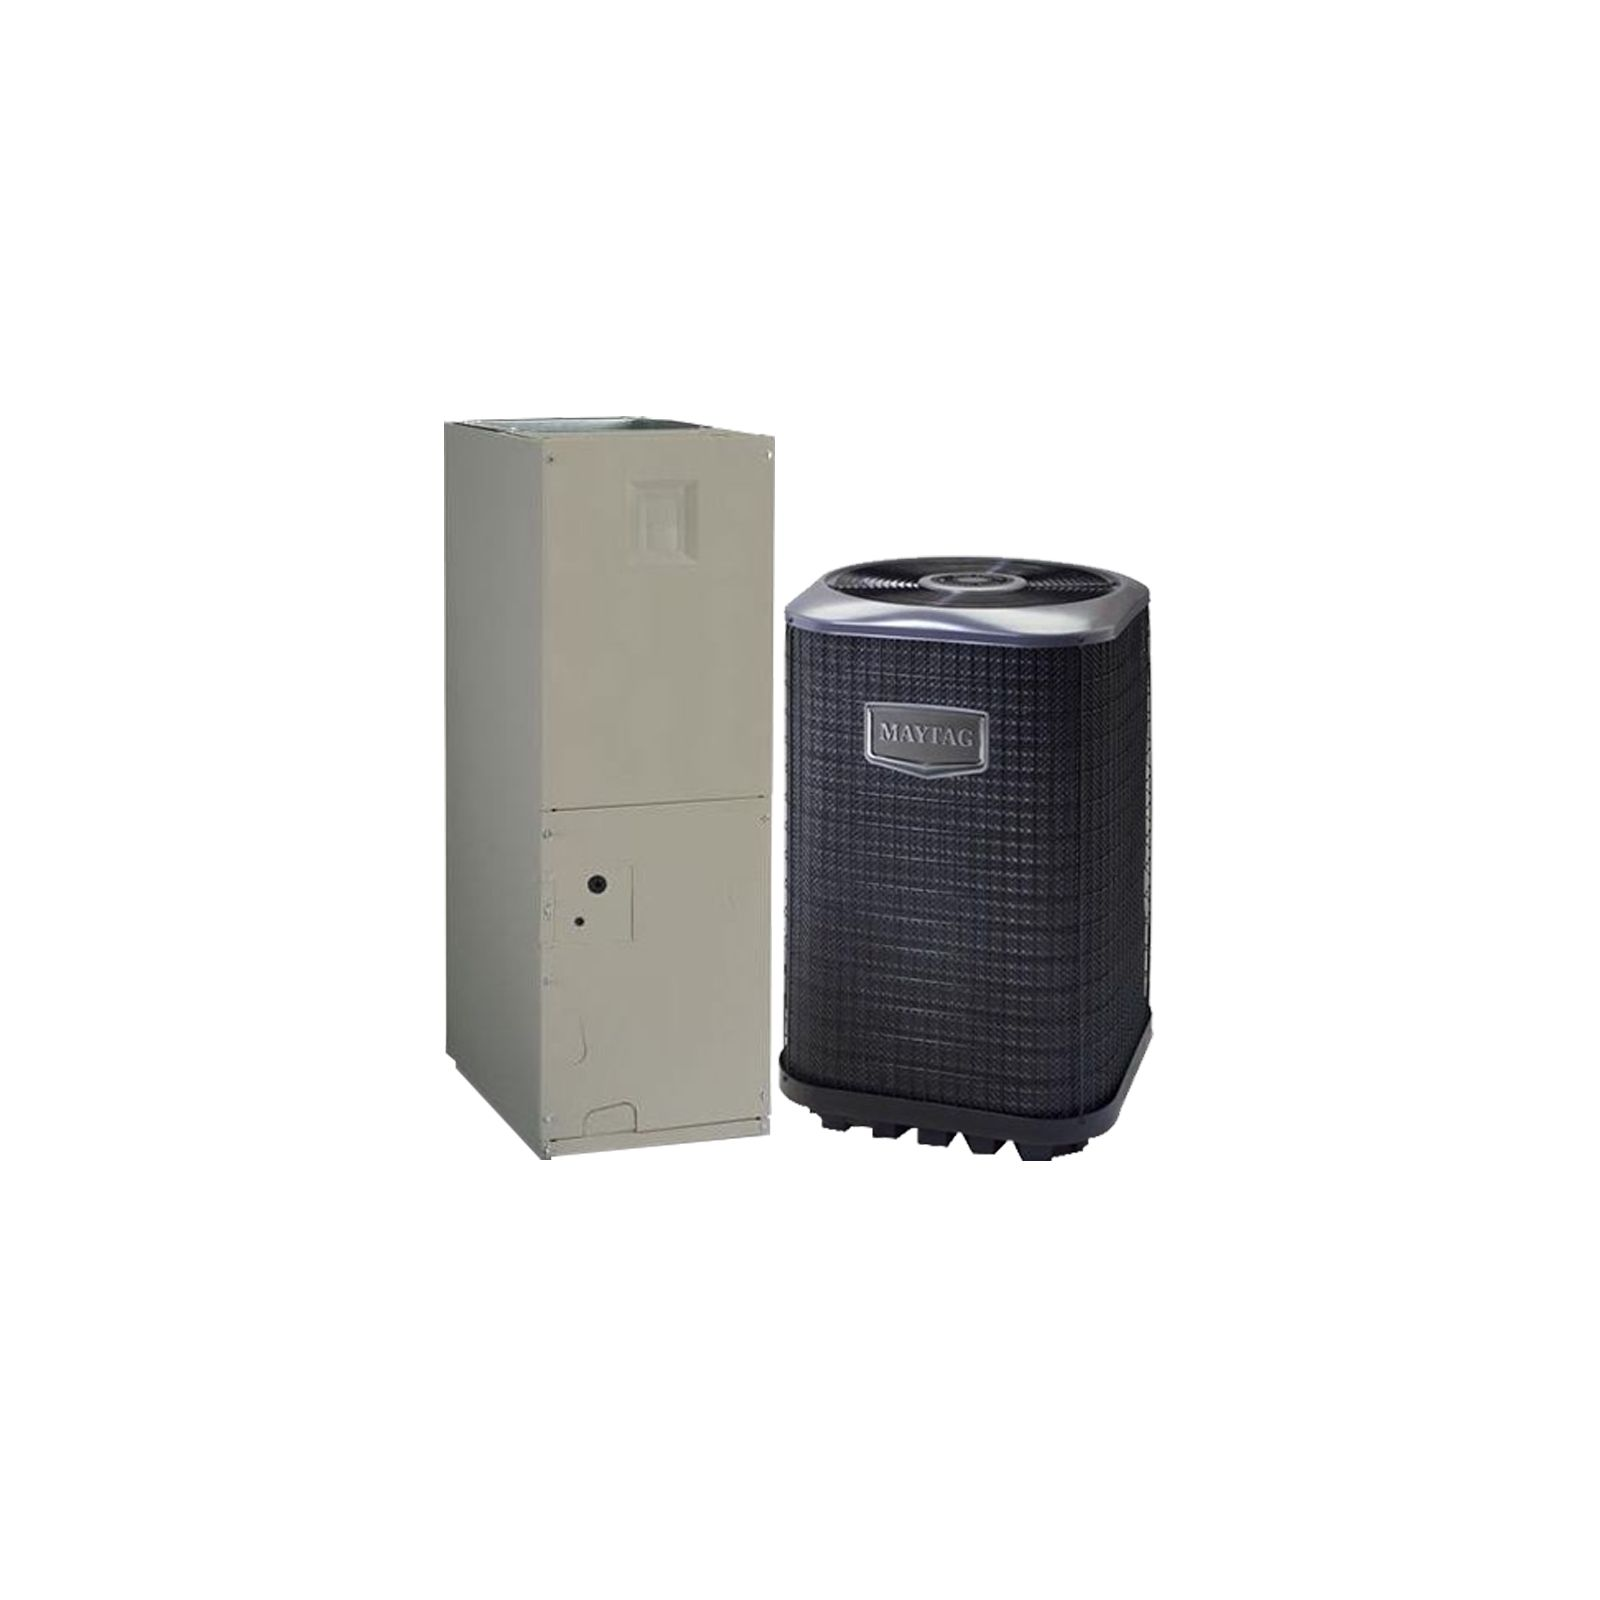 Maytag (AHRI 5561832) MSA6BF Series 3 Ton 16 SEER, Air Conditioner System